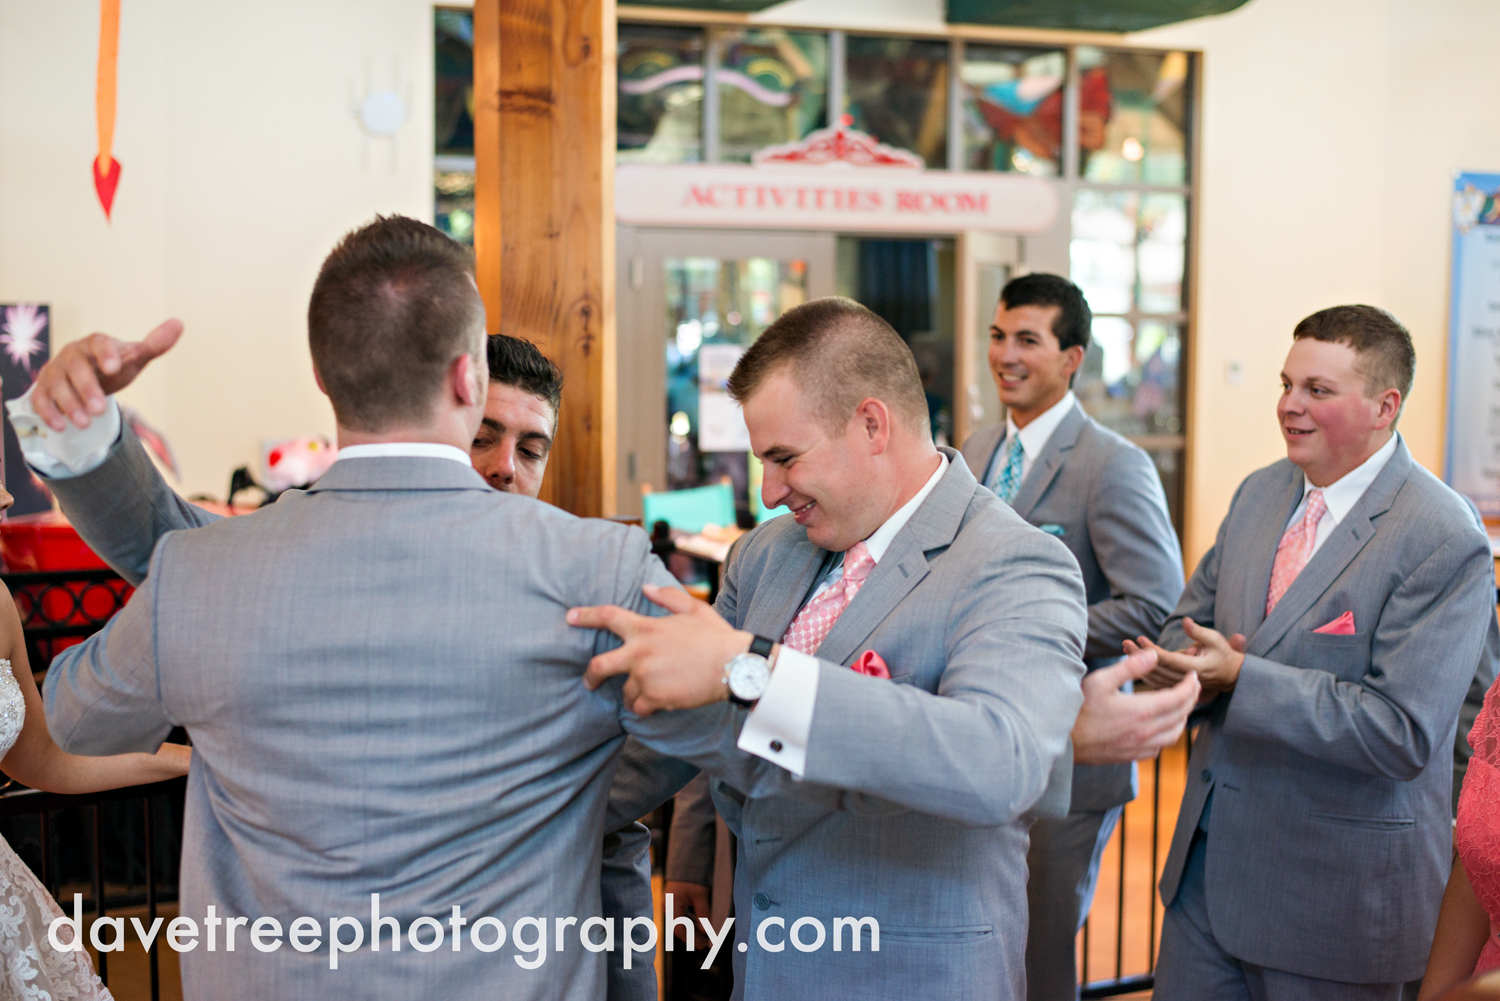 veranda_wedding_photographer_st_joseph_wedding_106.jpg